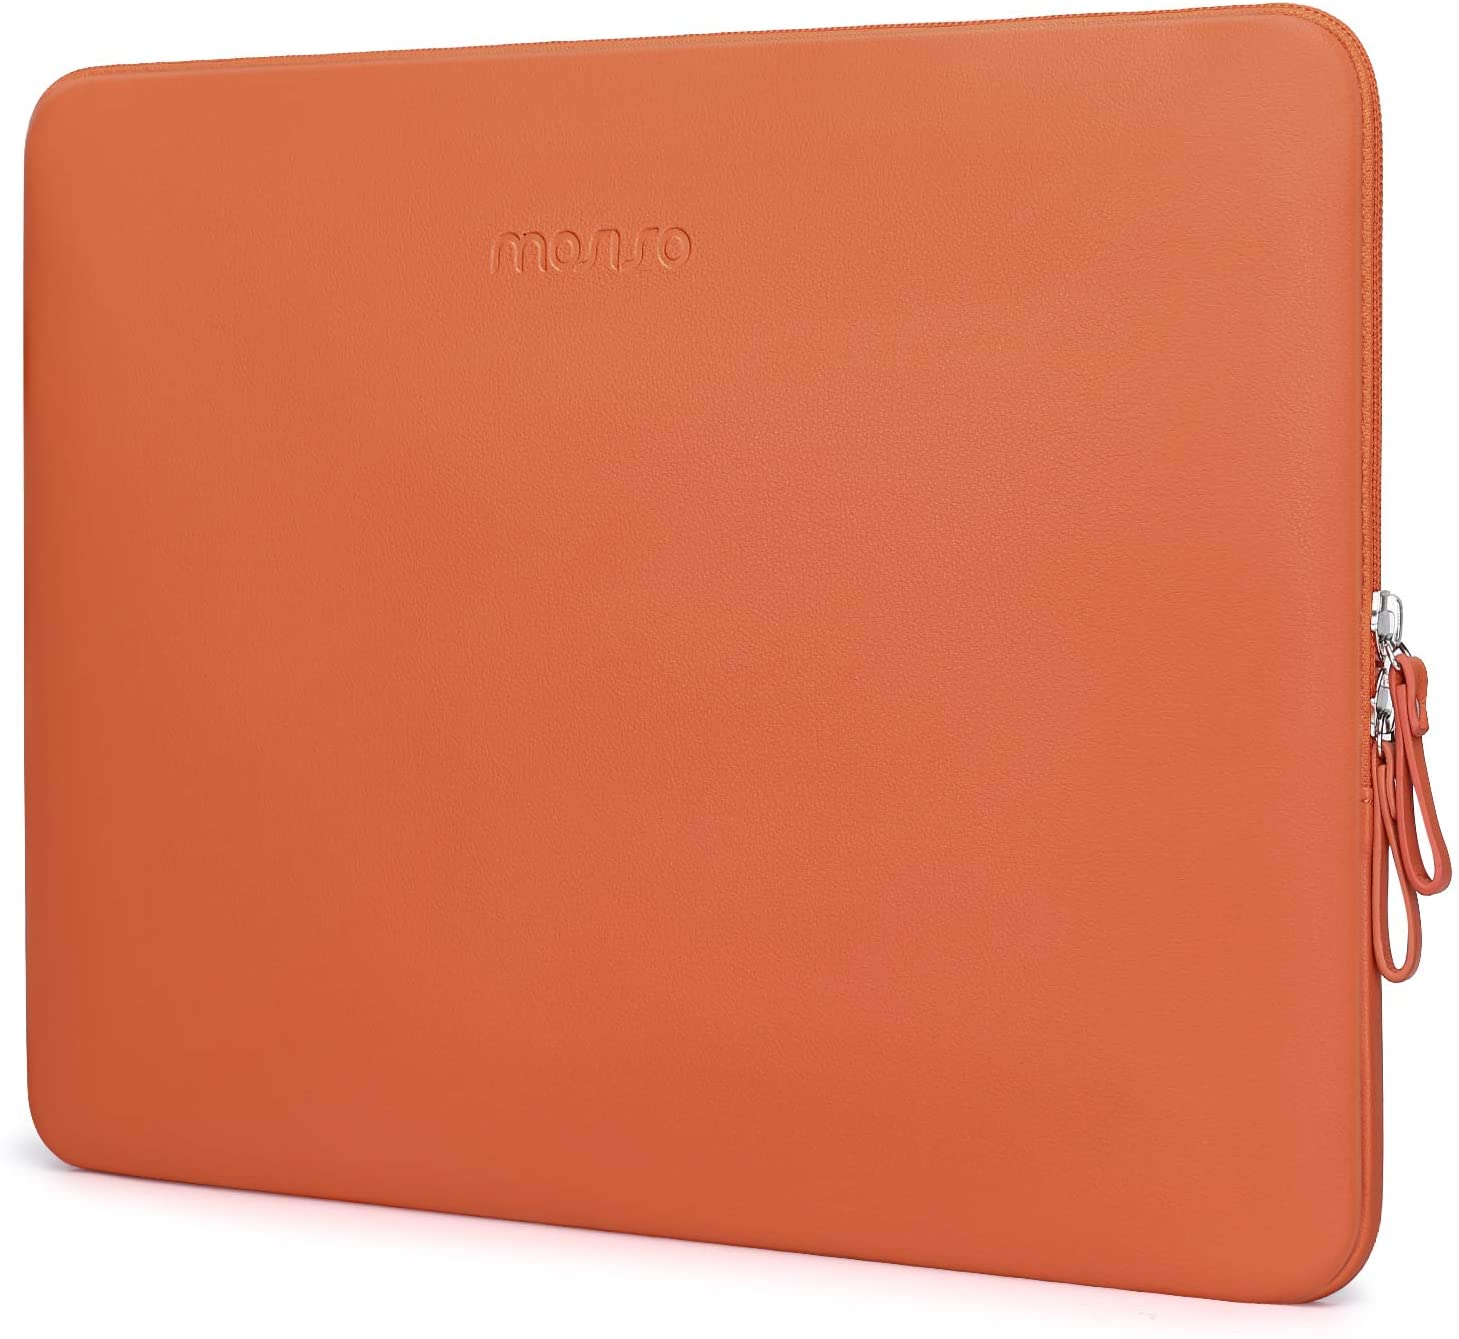 MOSISO Laptop Sleeve Compatible with 13-13.3 Inch MacBook Air/MacBook Pro Retina/2019 2018 Surface Laptop 3/2/Surface Book 2, PU Leather Super Padded Bag Waterproof Protective Case, Orange